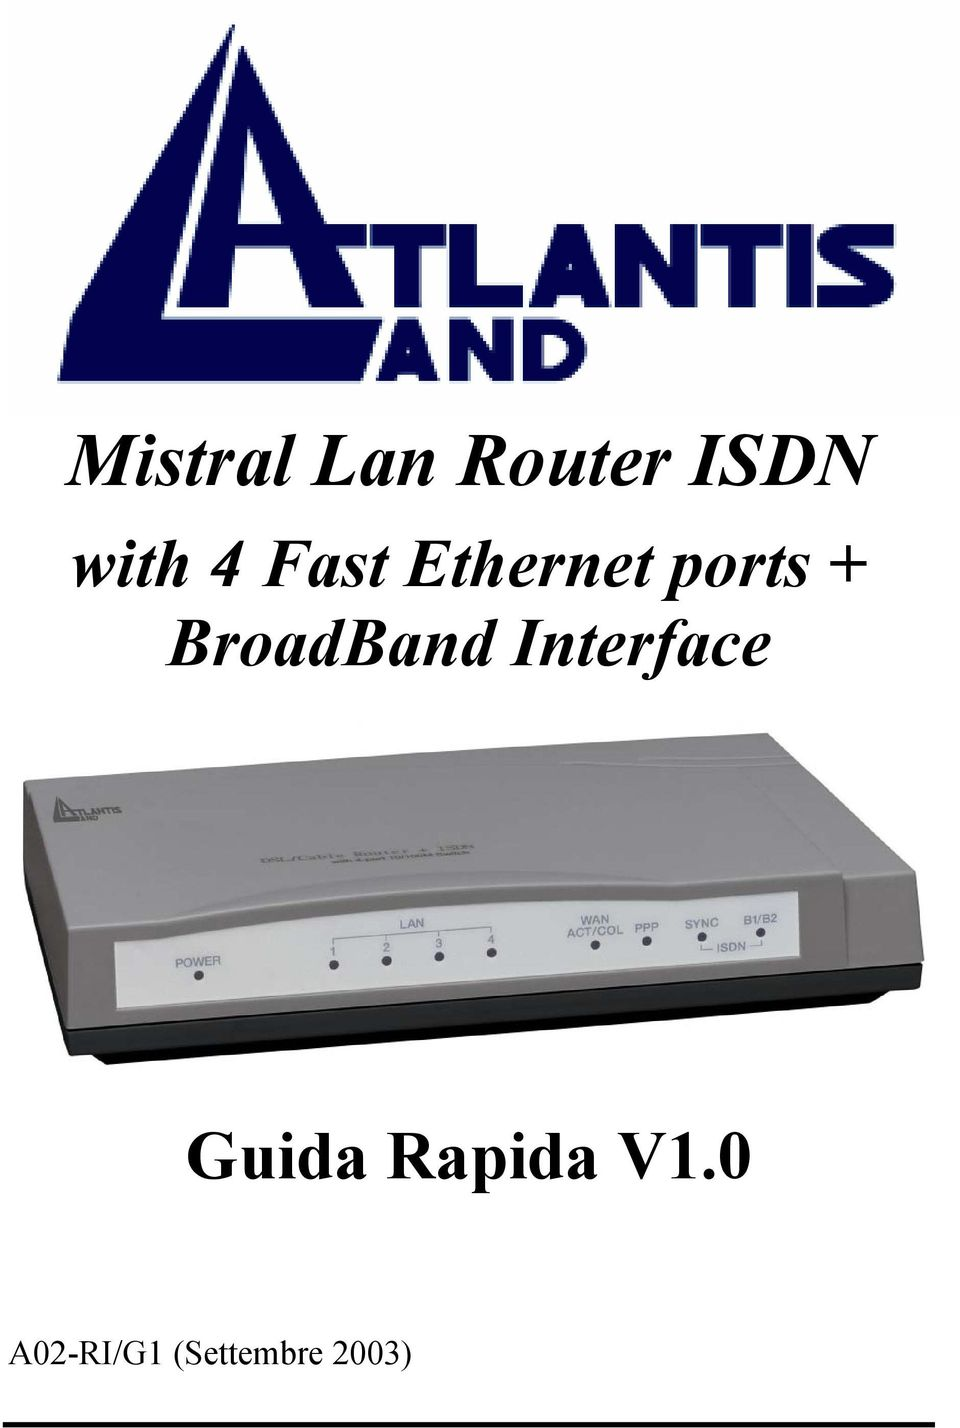 BroadBand Interface Guida